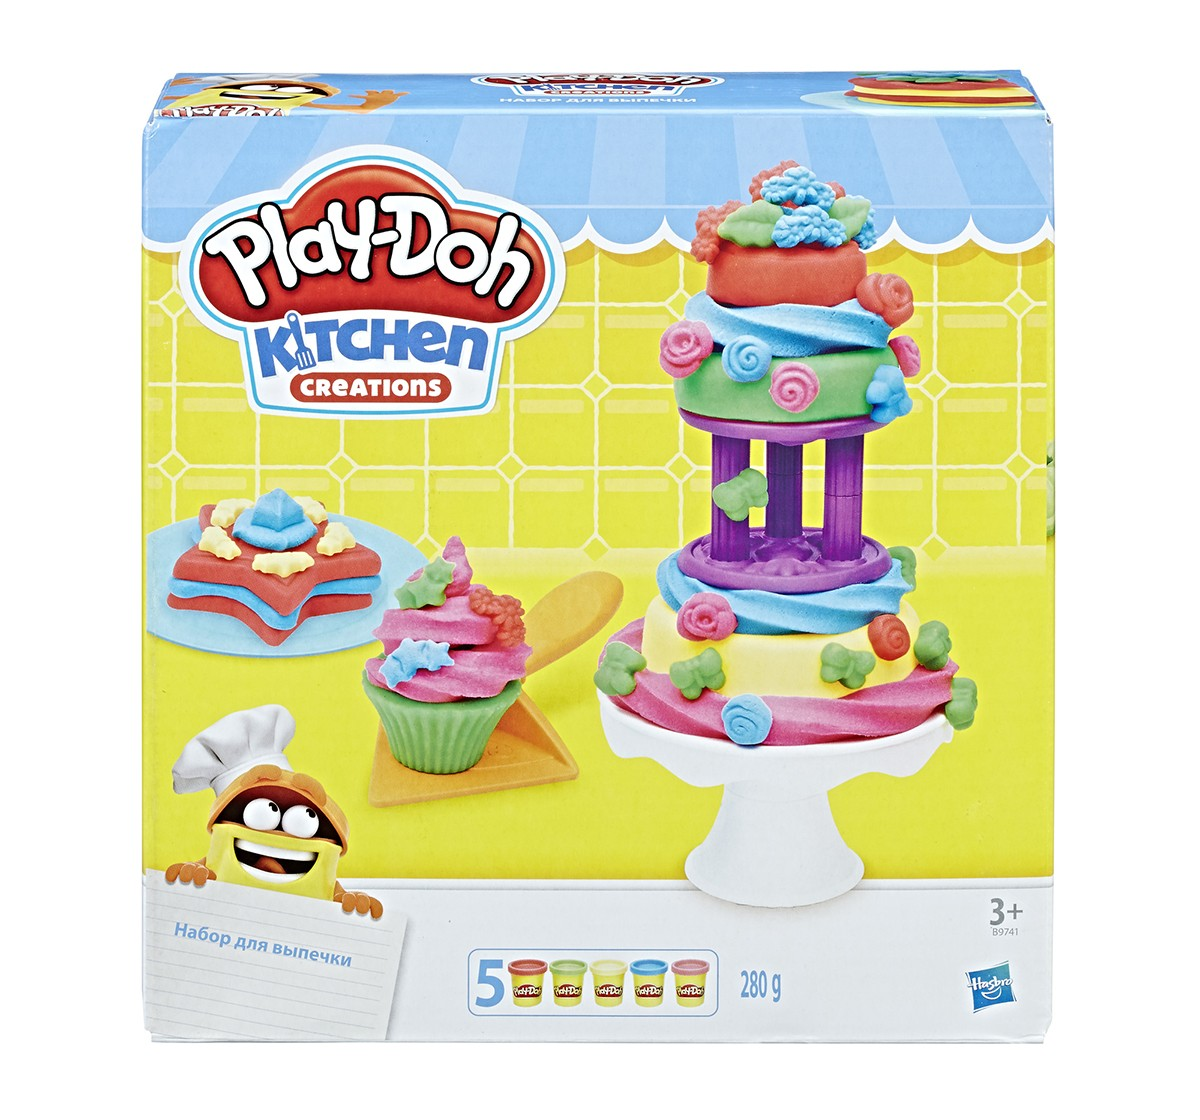 Play-Doh Kitchen Creations Frost 'n Fun Cakes  Clay & Dough for Kids age 3Y+